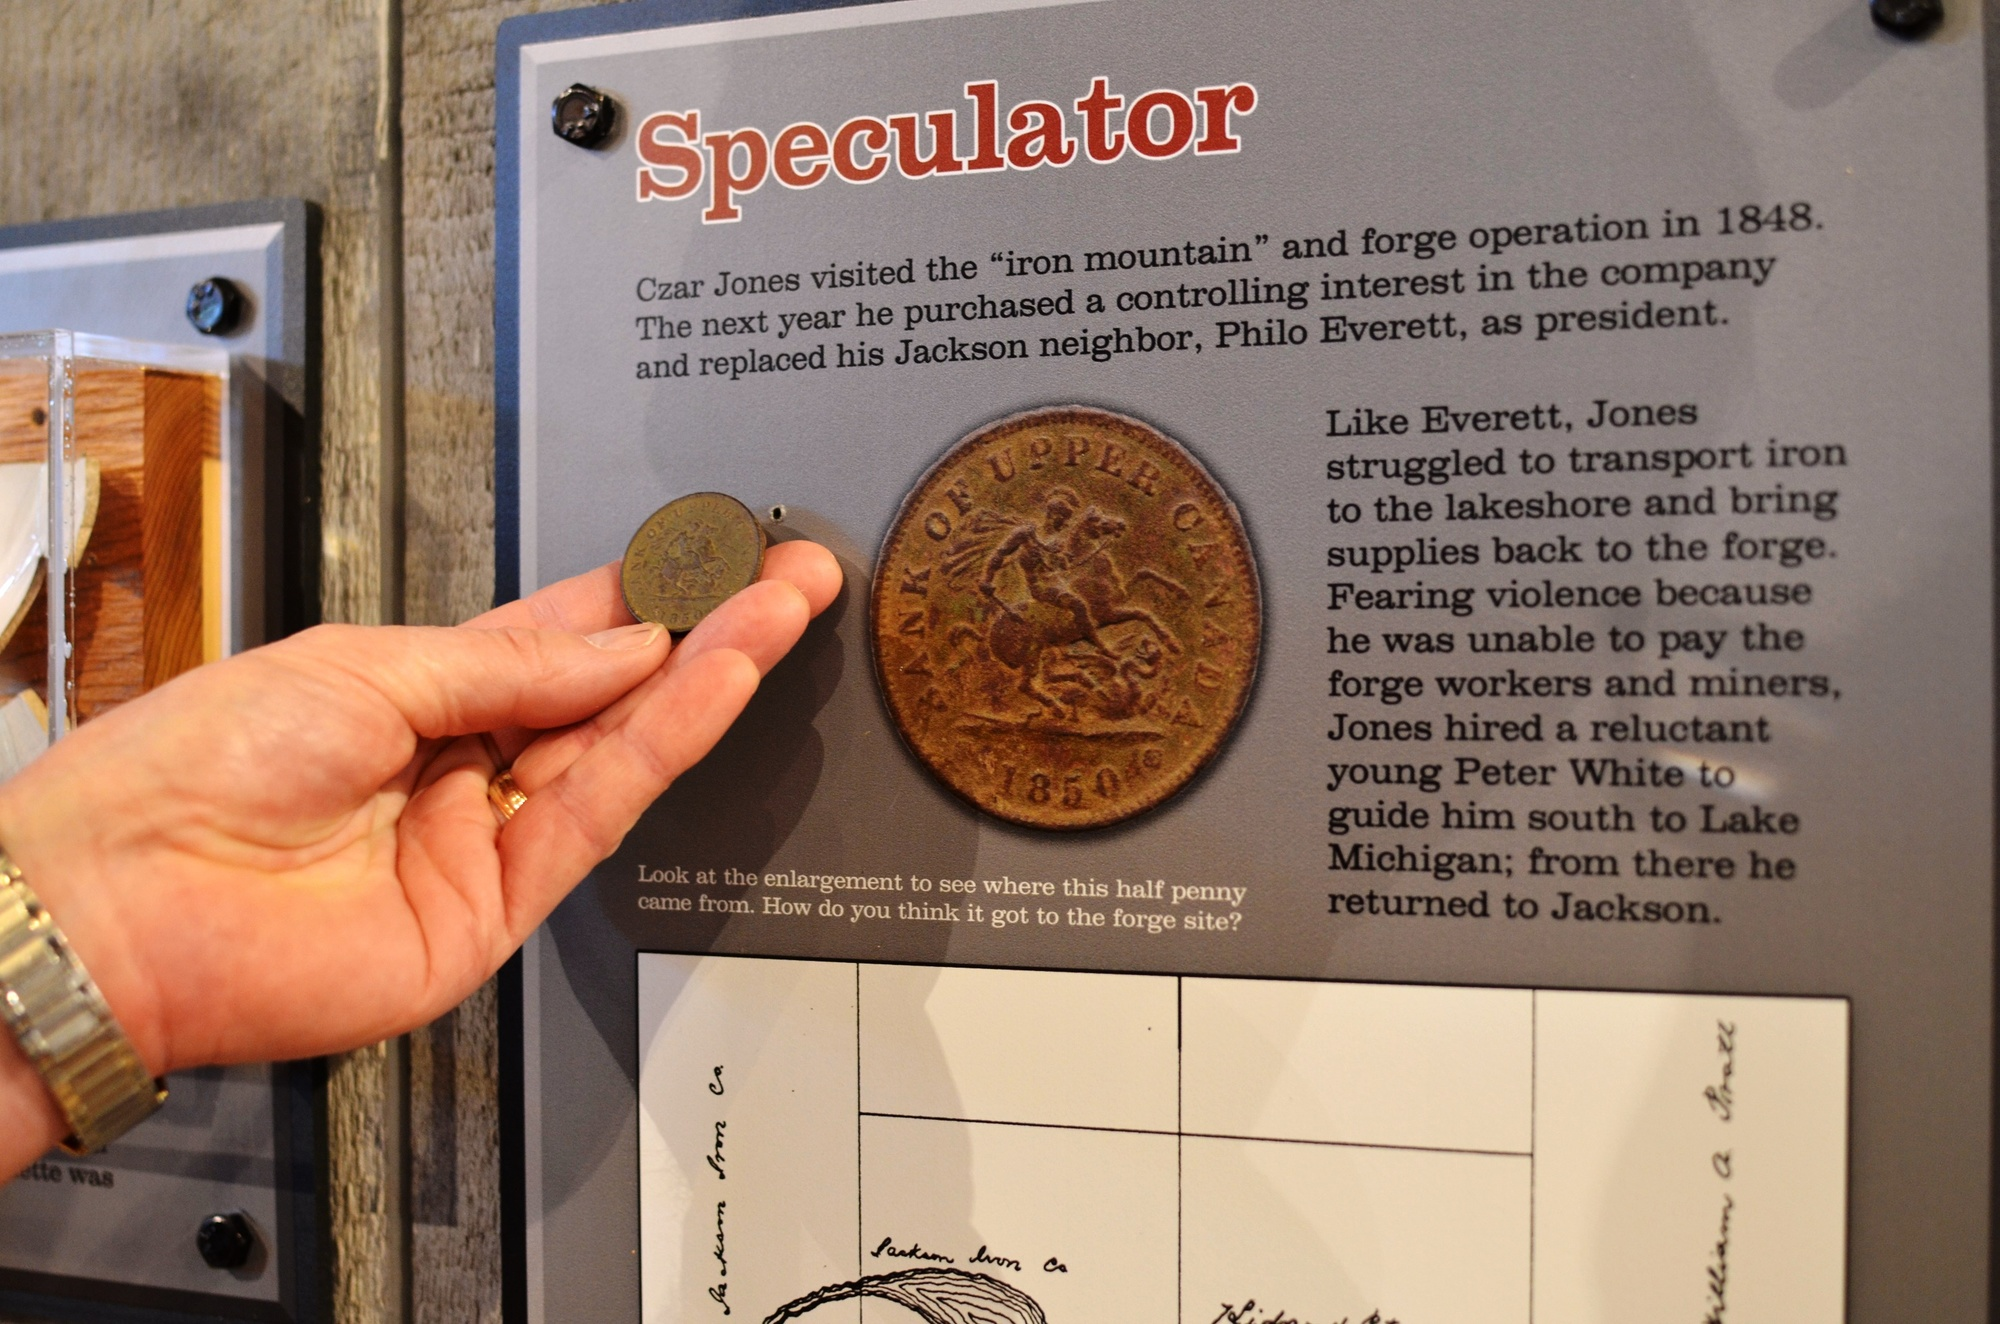 A half-penny artifact from the Carp River Forge is shown next to an exhibit display that discusses the coin.